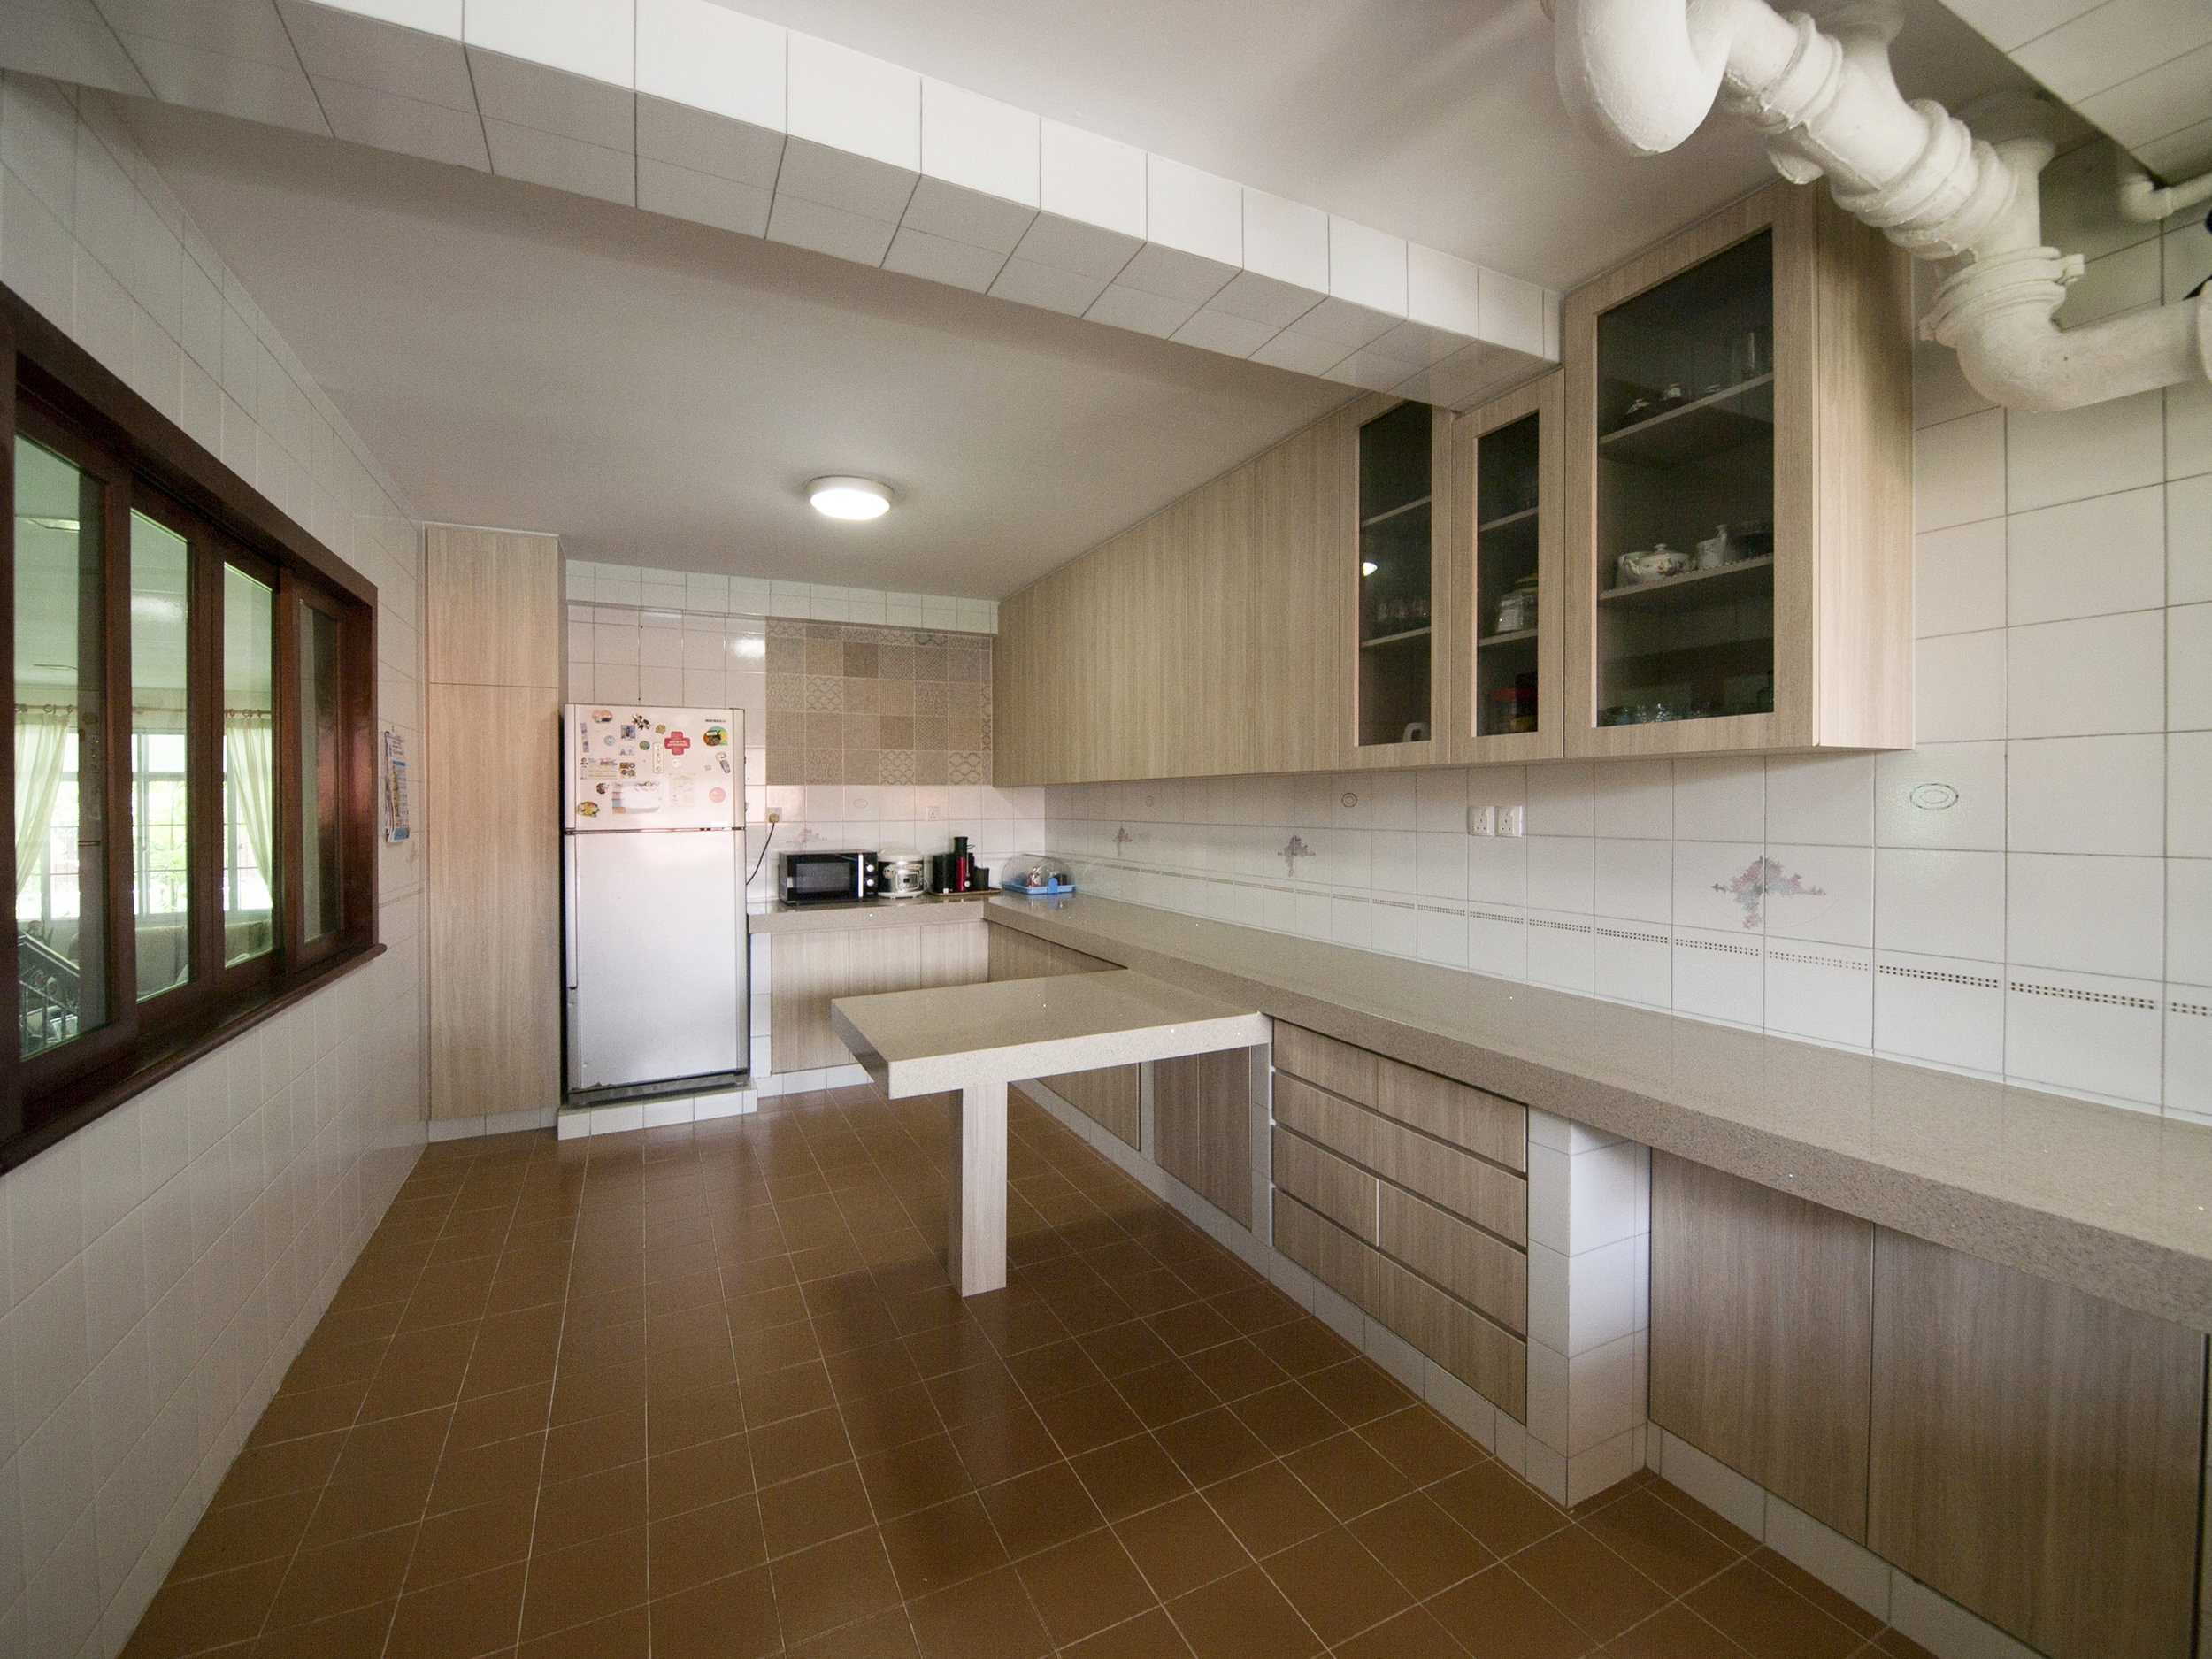 It was a challenge to revamp the kitchen but preserve the original concrete structure for the cabinets and floor and wall tiles. We achieved a brighter, more airy feel for a pleasant cooking experience.